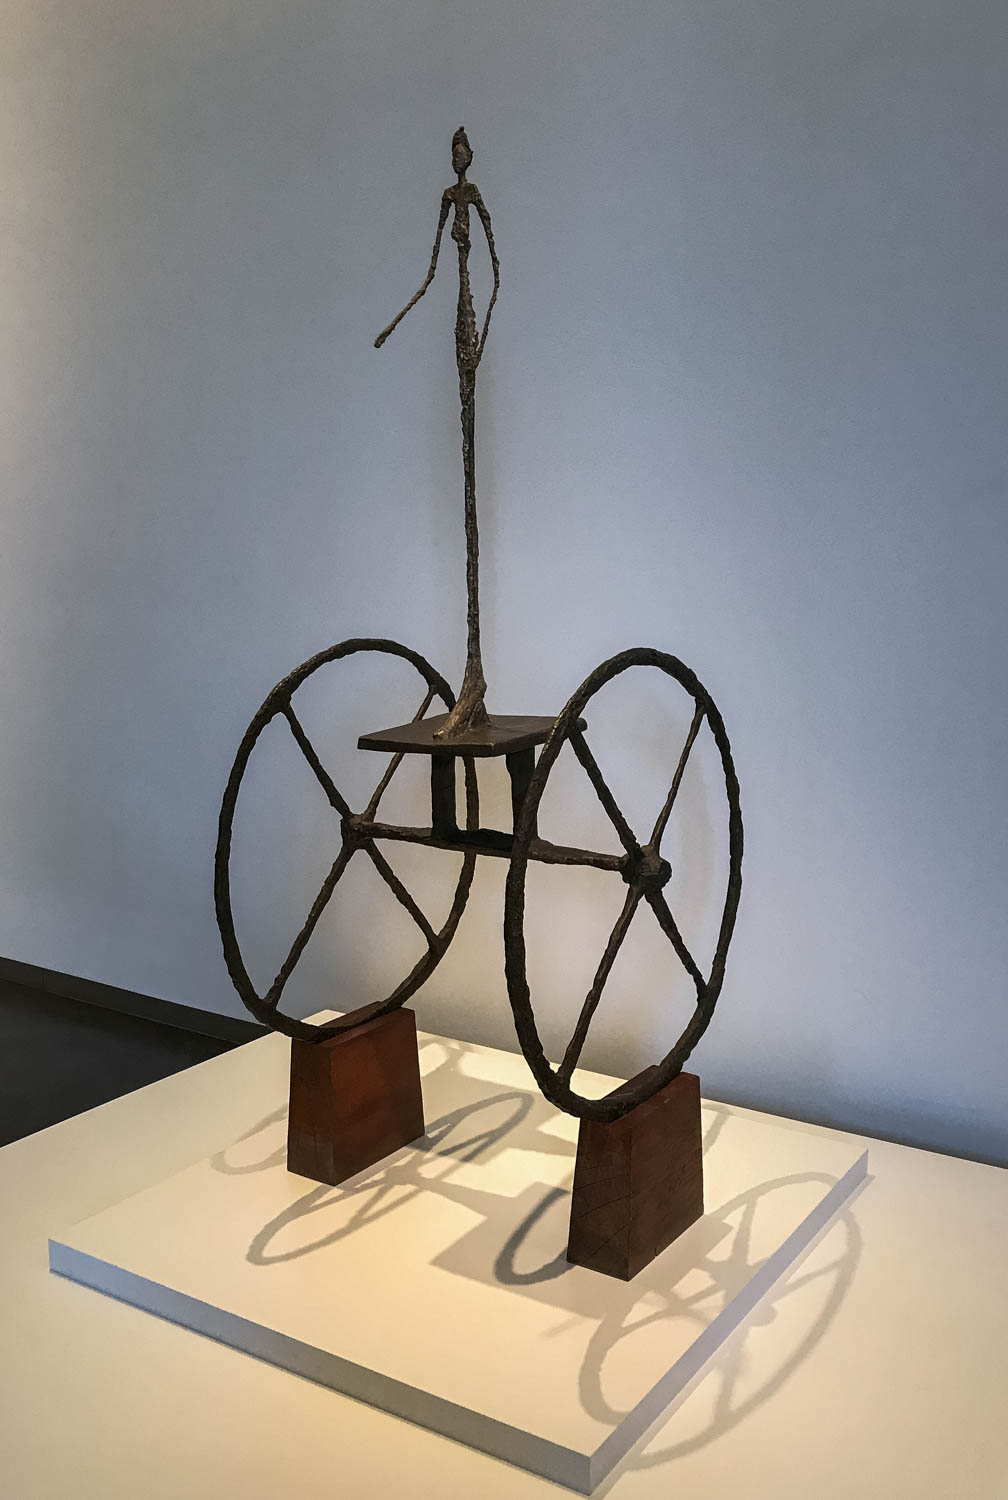 """The Chariot , 1950 by Alberto Giacometti (1901-1966) painted bronze. """"The solitary, emaciated figure in  The Chariot , frozen in a precarious stance, is a poignant reminder of the fragility of life. The sculpture is associated with Etruscan and Egyptian chariot motifs as well as with Giacometti's memories of 'a pharmacy wagon being wheeled around the room' in the Bichat Clinic where he was a patient during World War II. Equally significant to  The Chariot is he existential philosophy of his friend Jean-Paul Sartre. Existentialism emphasizes the isolation of the individual in an indifferent universe, where existence is defined by an individual's choices."""""""